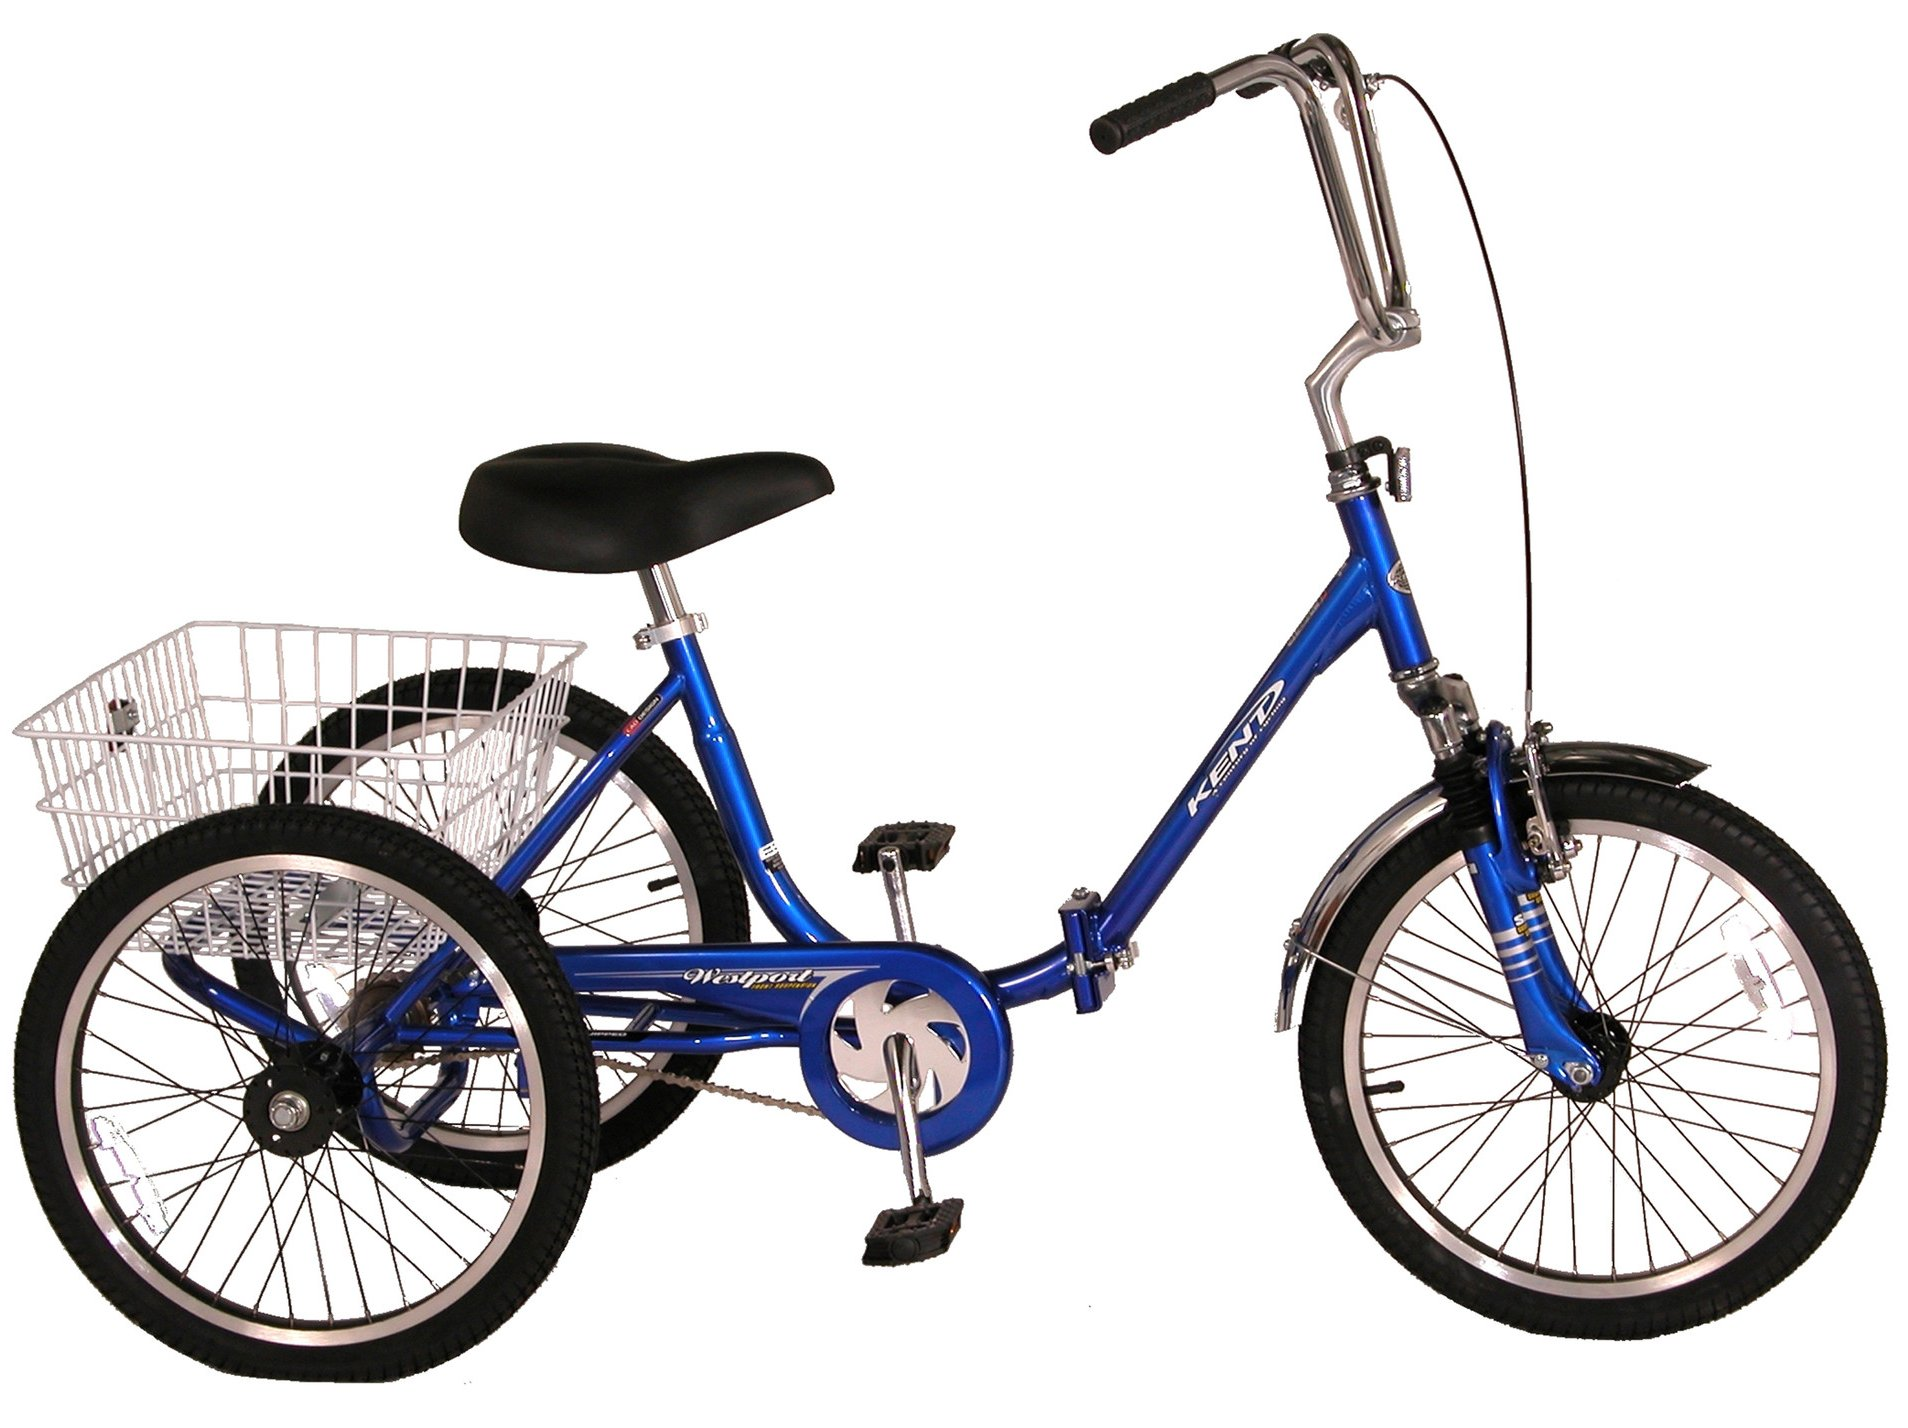 Electric Bicycles For Sale >> Worksman Lightning Electric Folding Port O Trike Adult Tricycle - UltraRob: Cycling and Outdoor ...